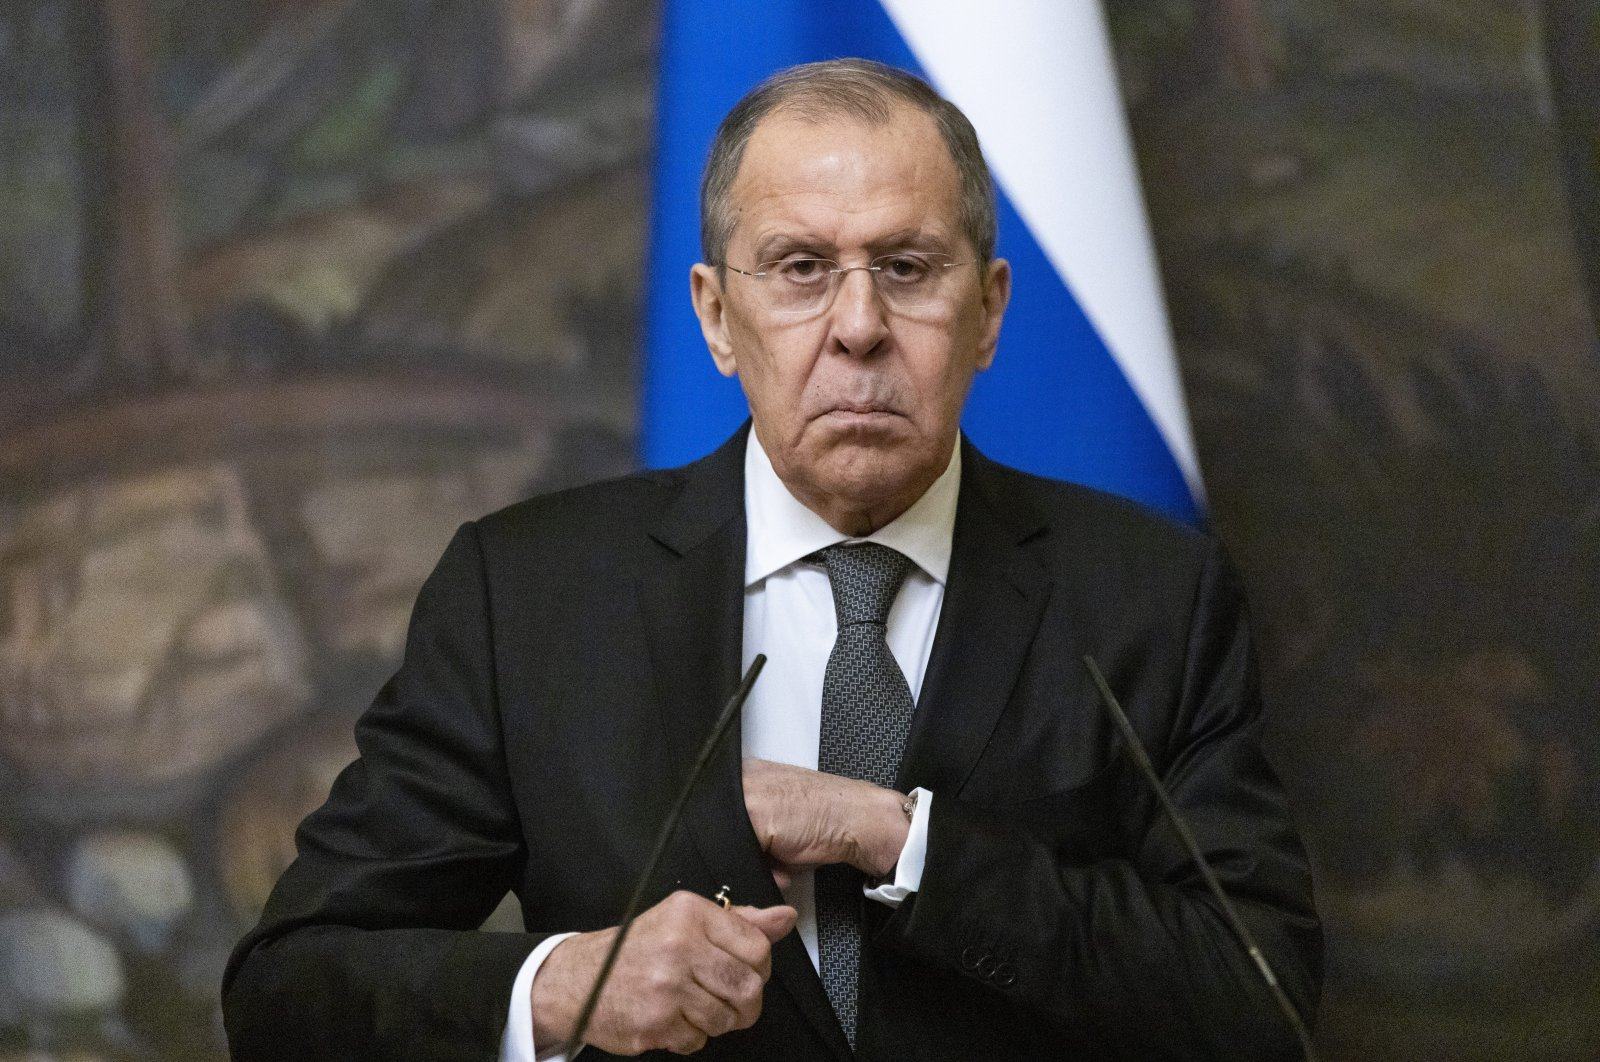 Russian Foreign Minister Sergey Lavrov prepares to leave a joint news conference with Palestinian Foreign Minister Riyad al-Maliki following their talks in Moscow, Russia, May 5, 2021. (AP Photo)